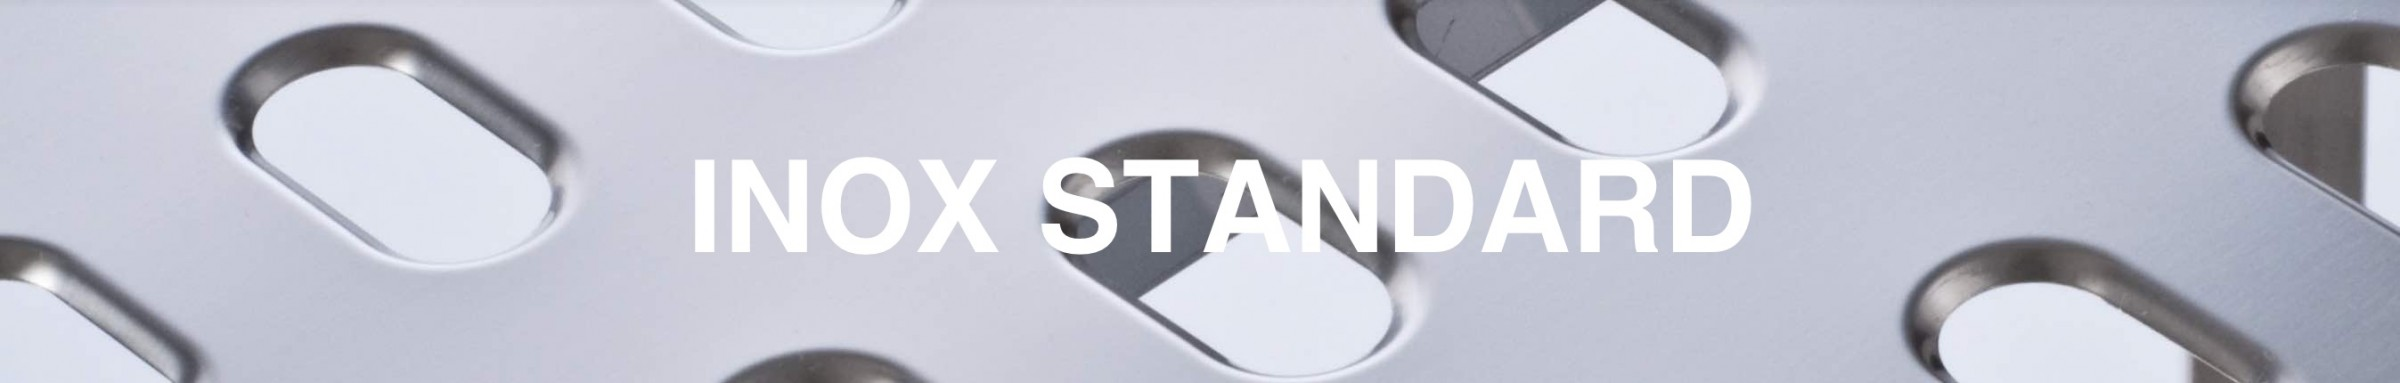 IN-FIX Inox Standard